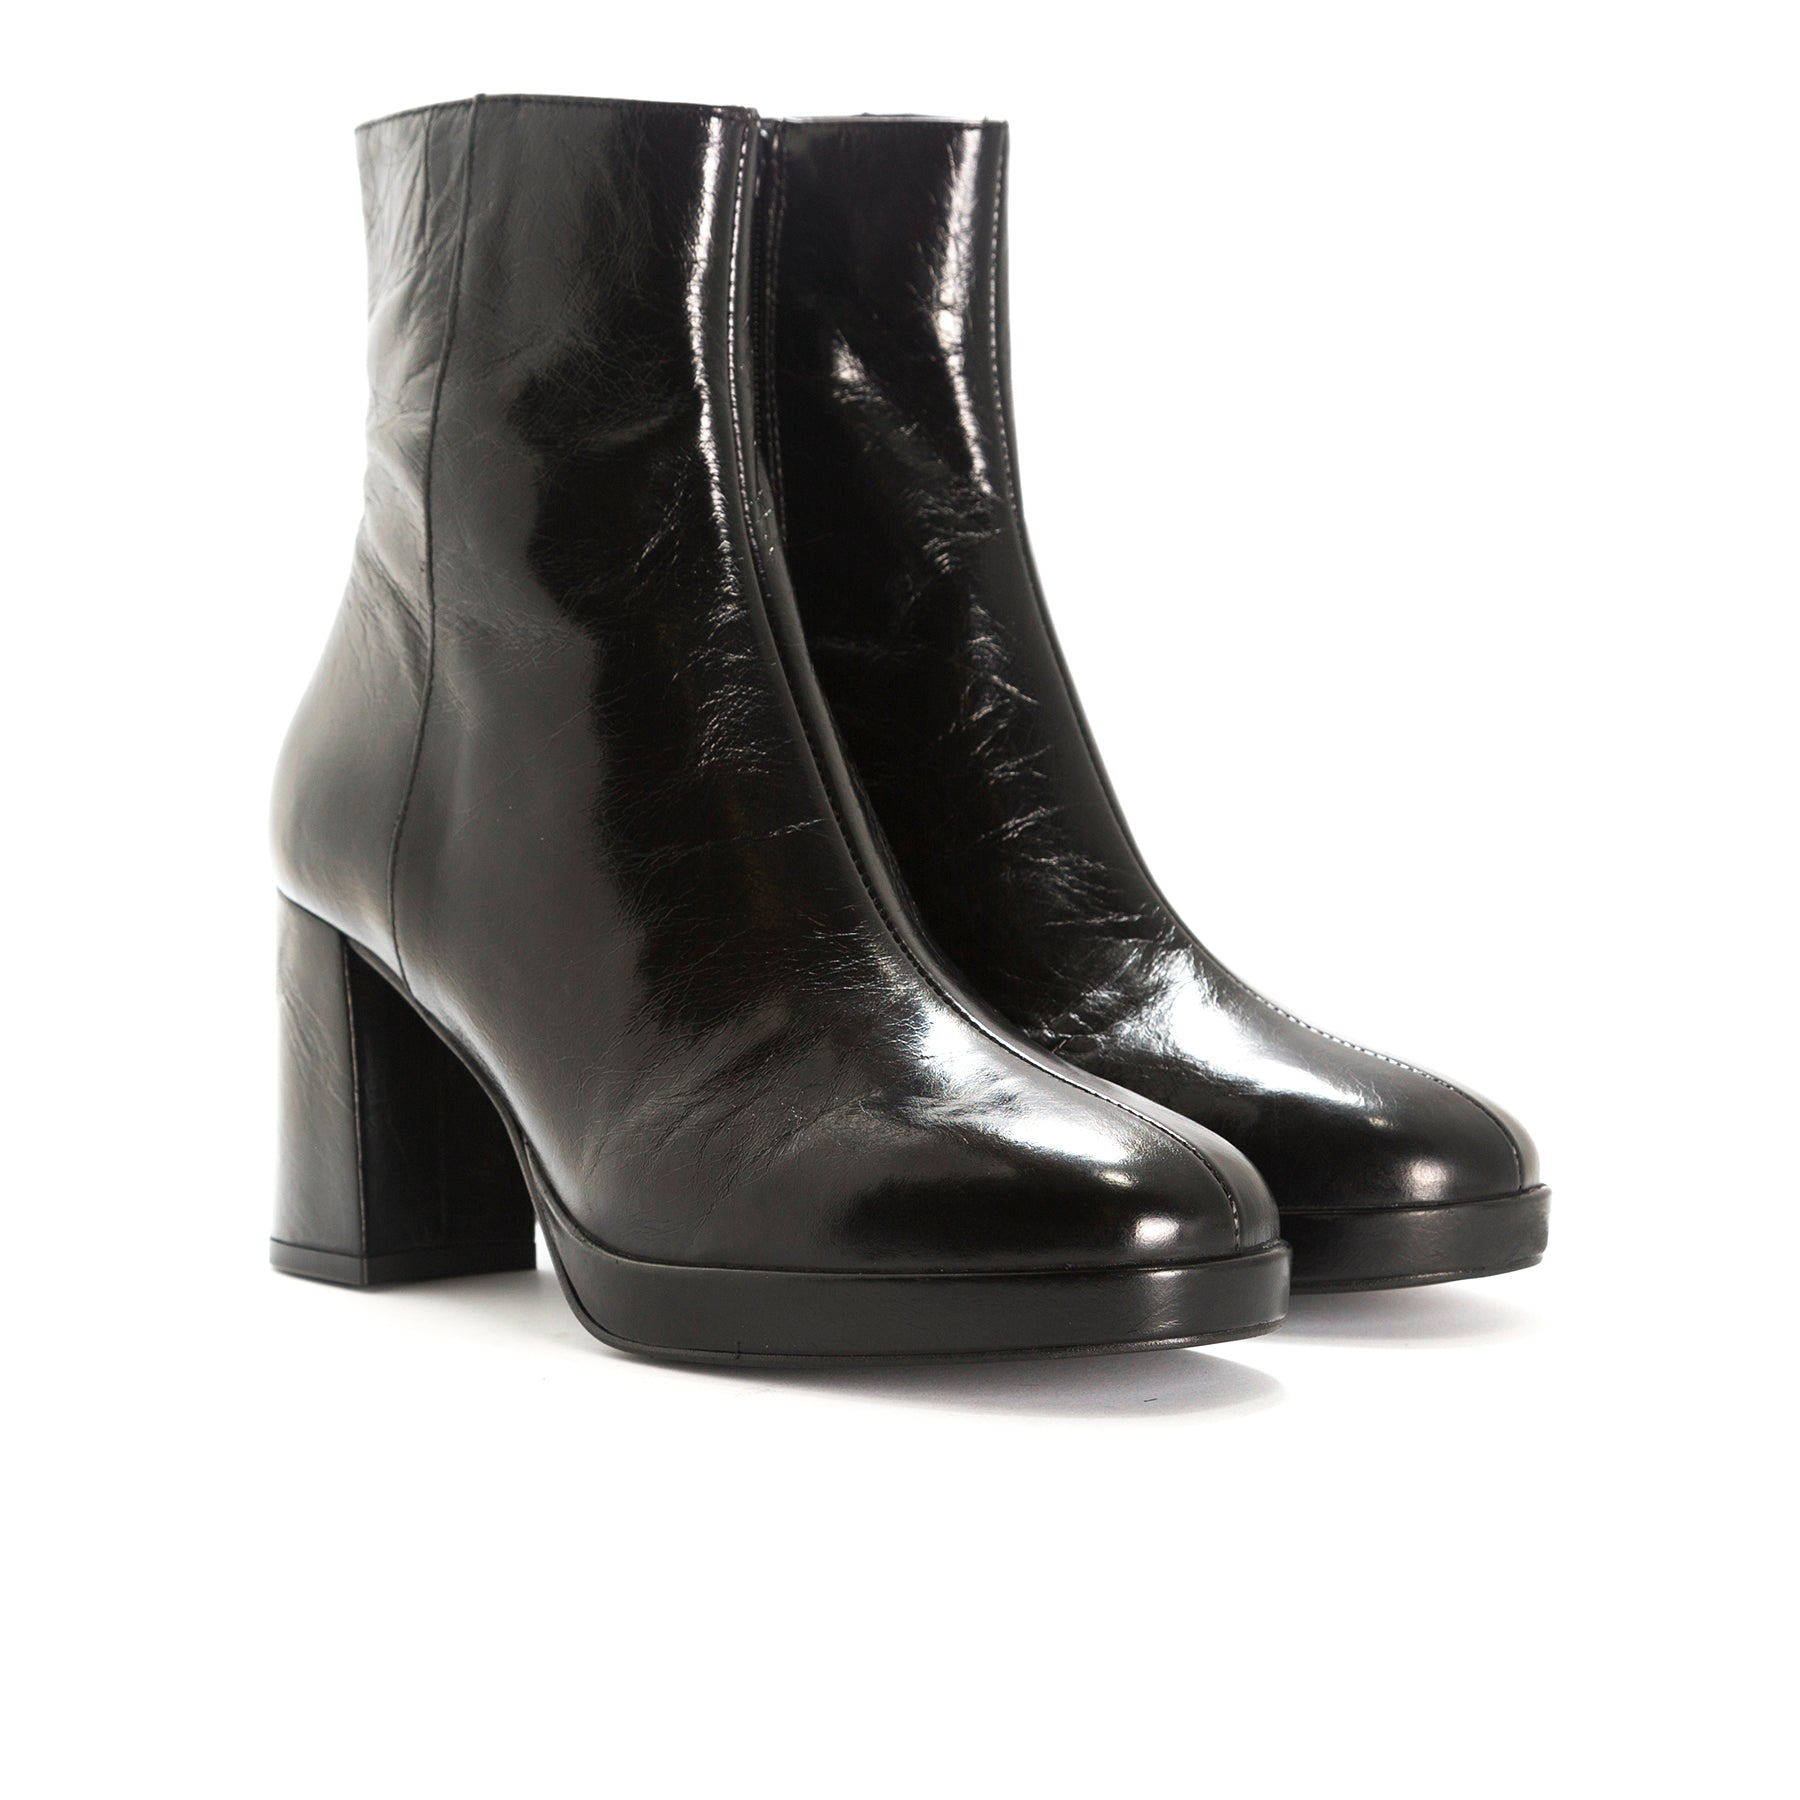 Henessey Black Leather Booties